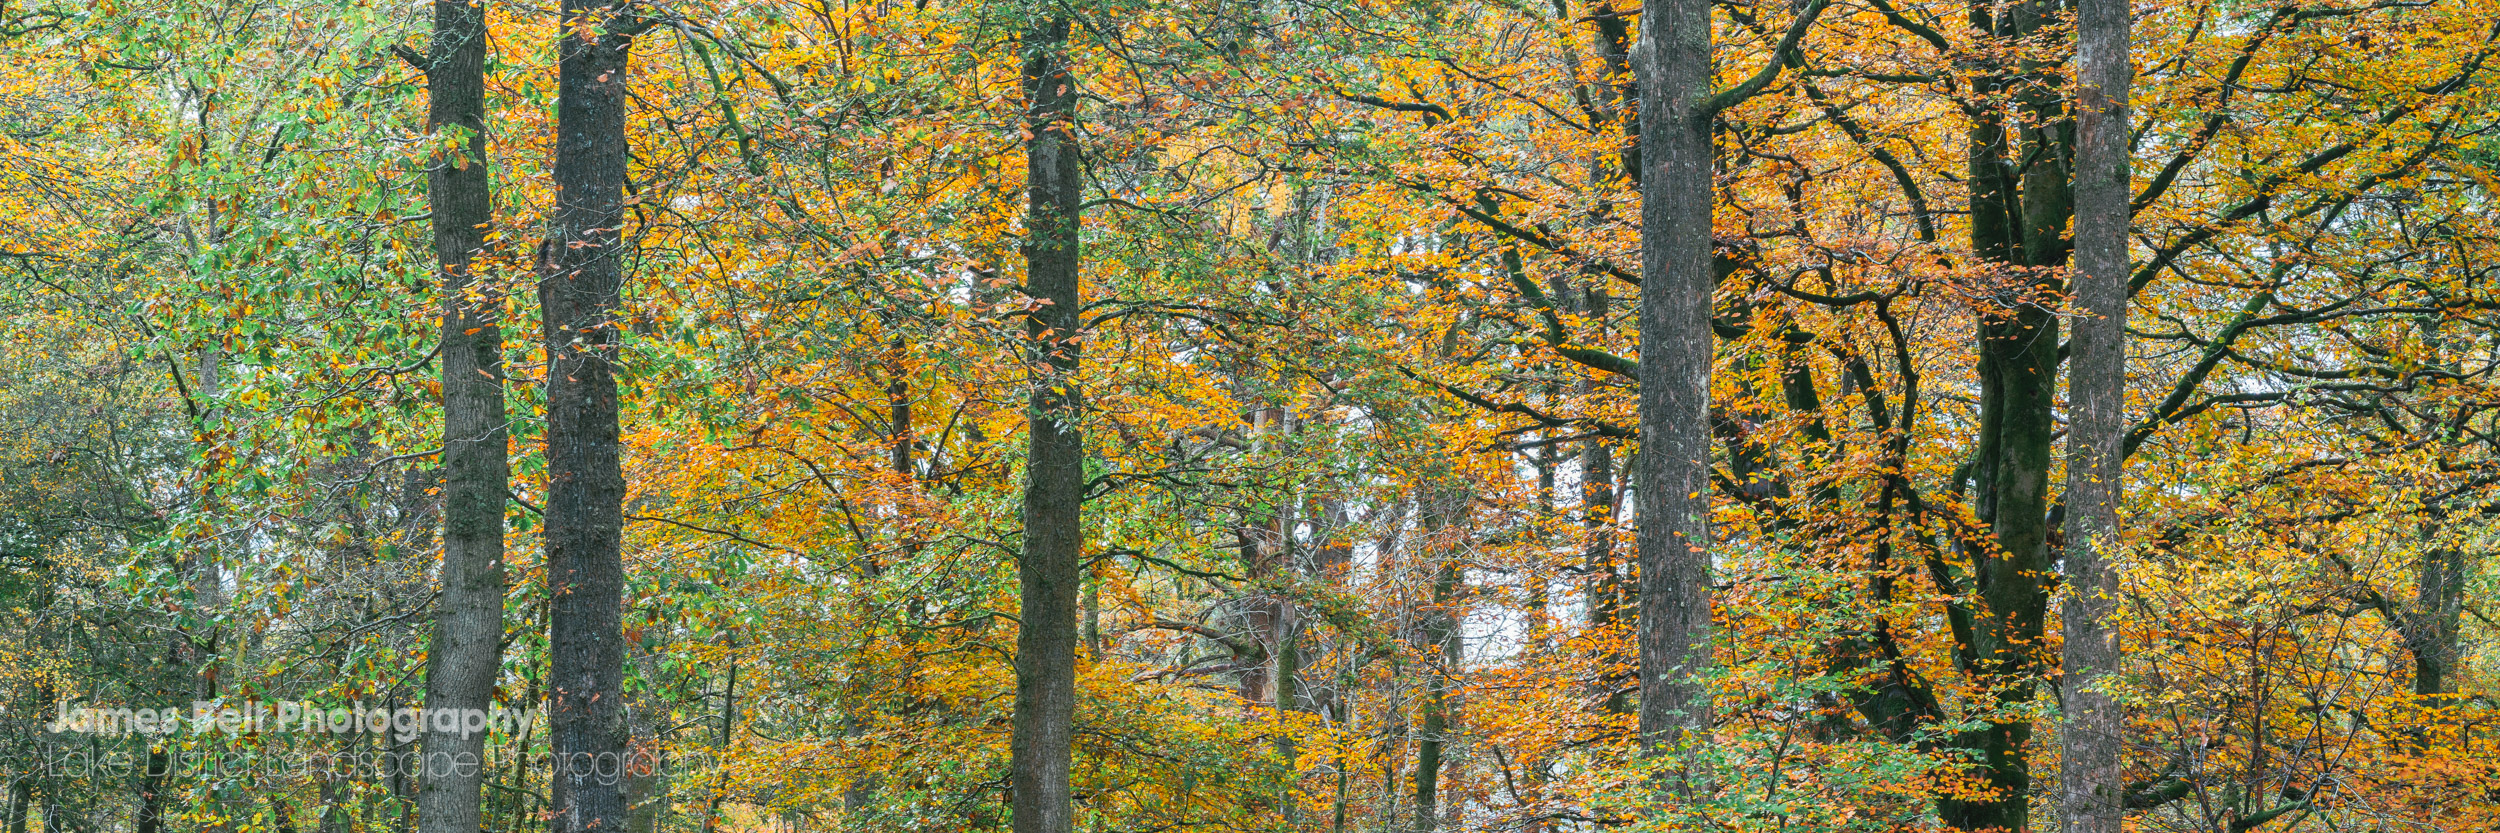 Autumn Landscape Photography Prints from the Lake District